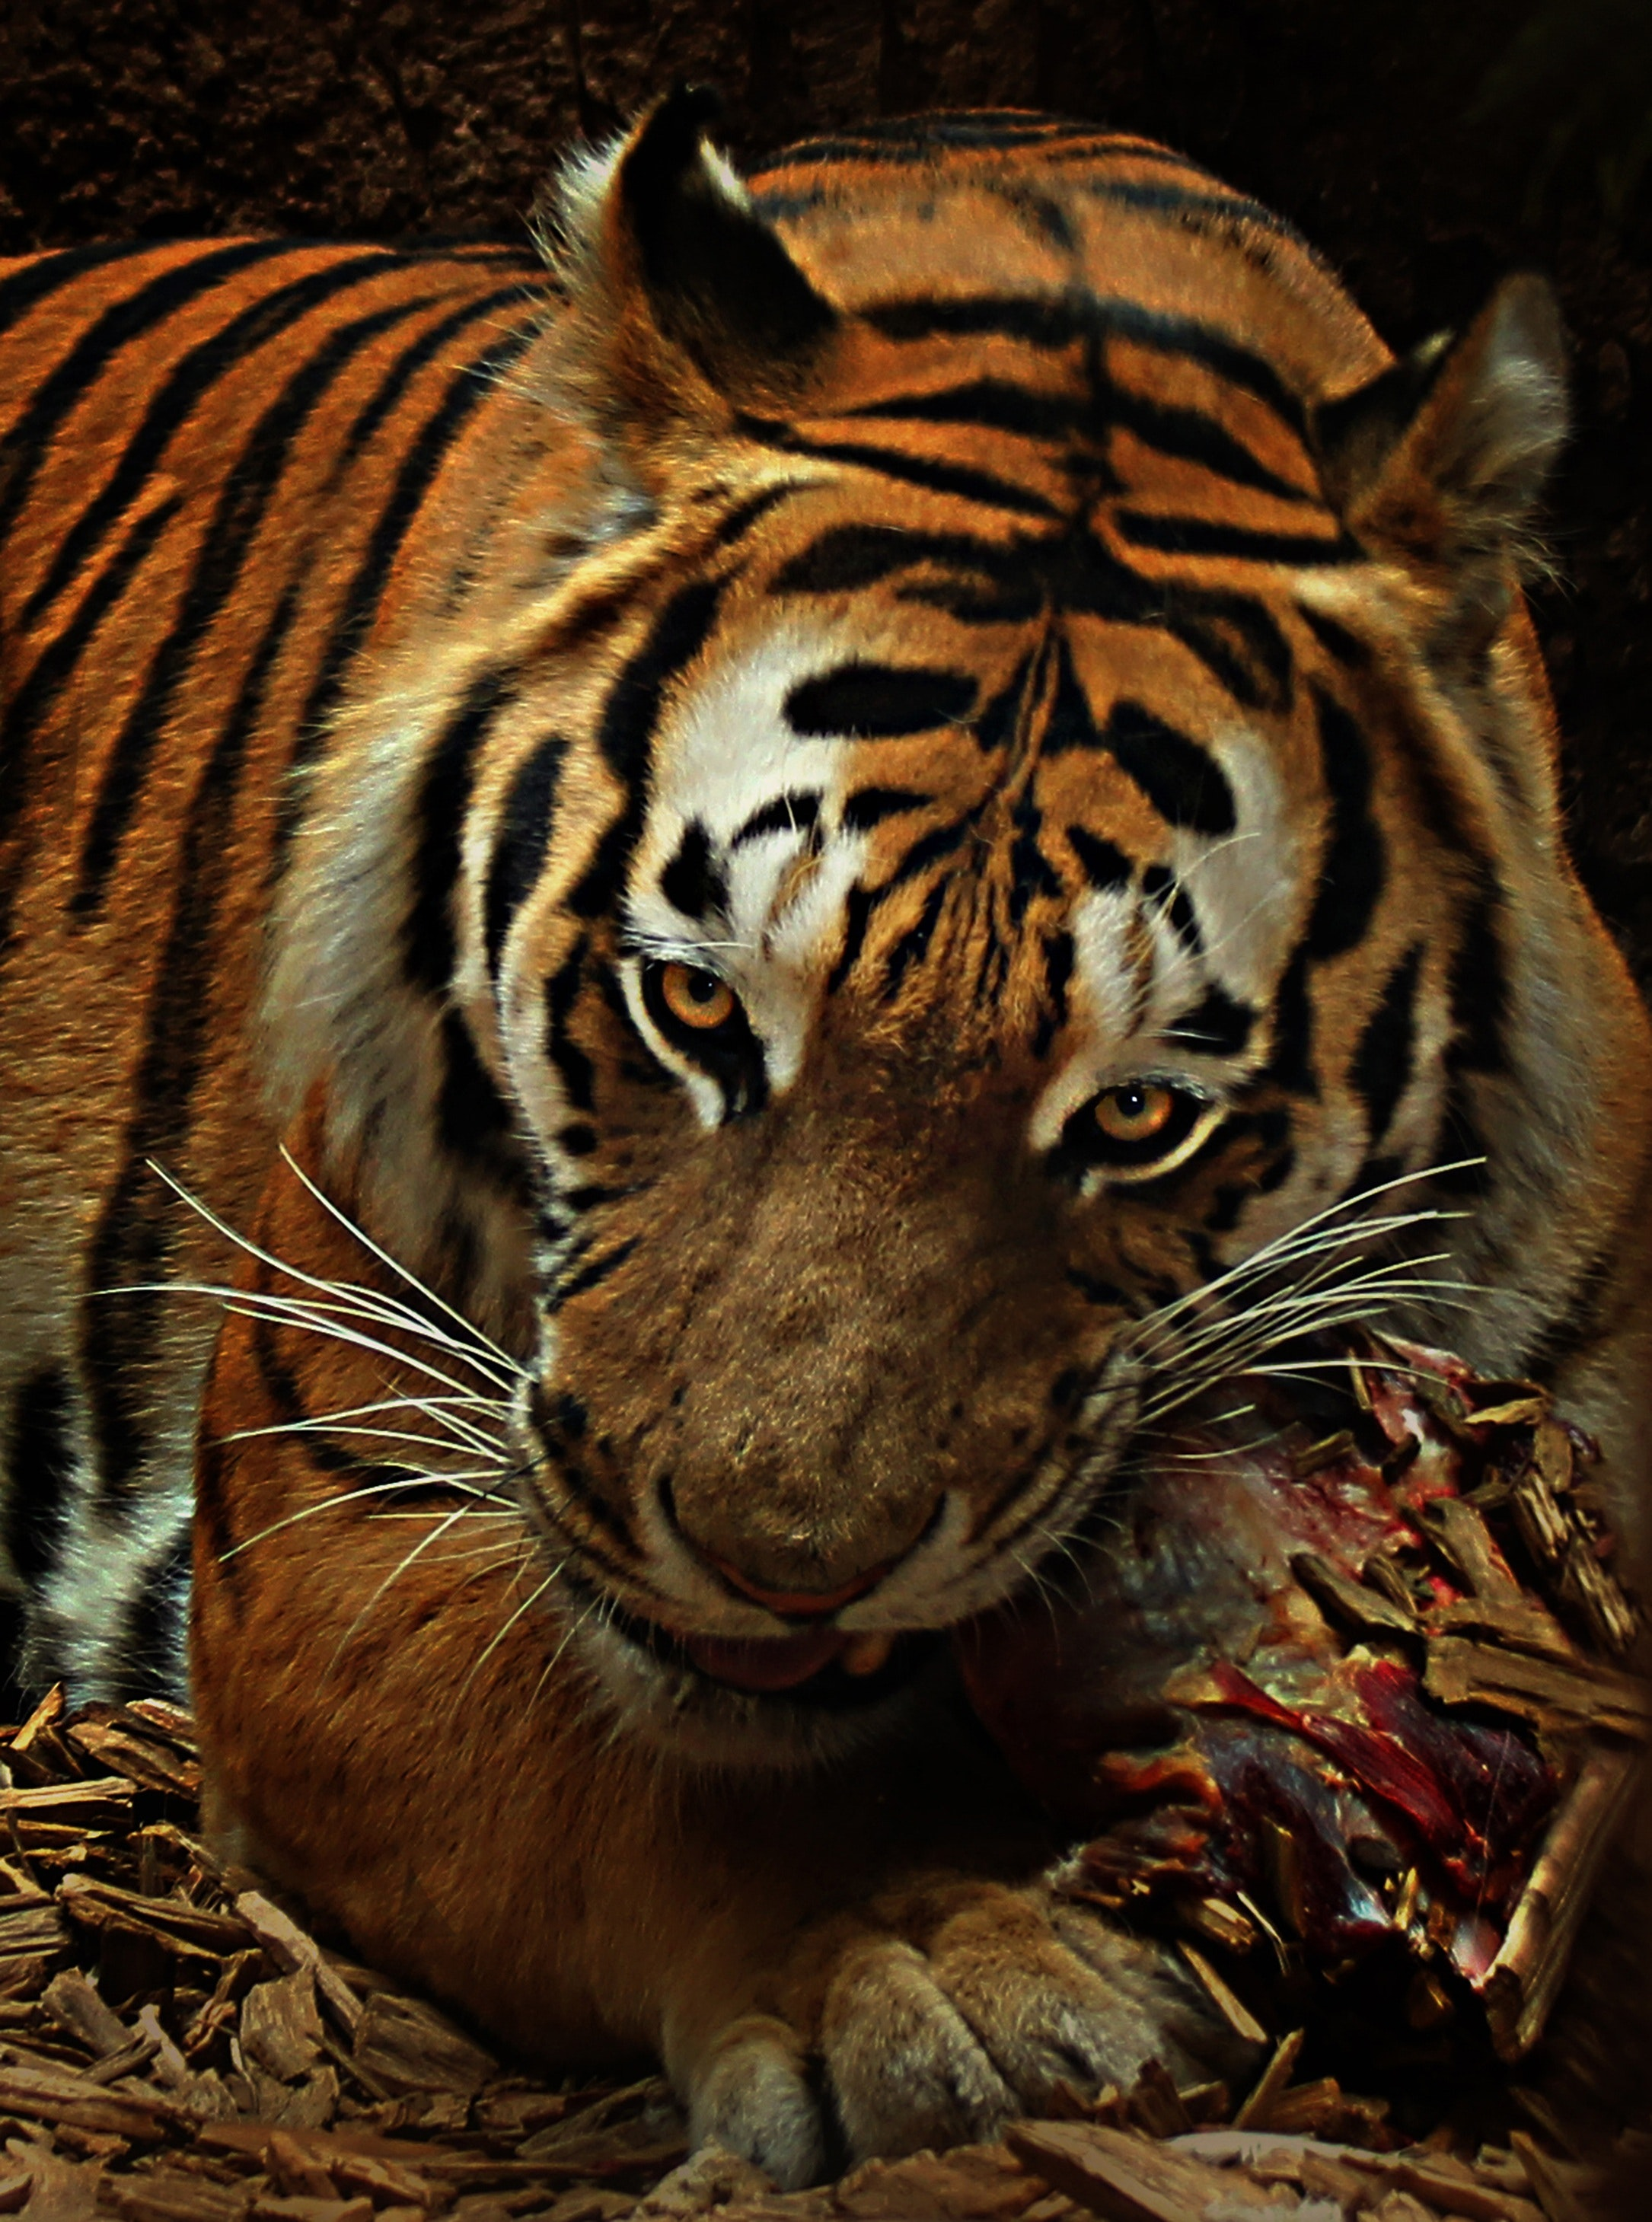 100 Majestic Tiger Pictures 183 Pexels 183 Free Stock Photos